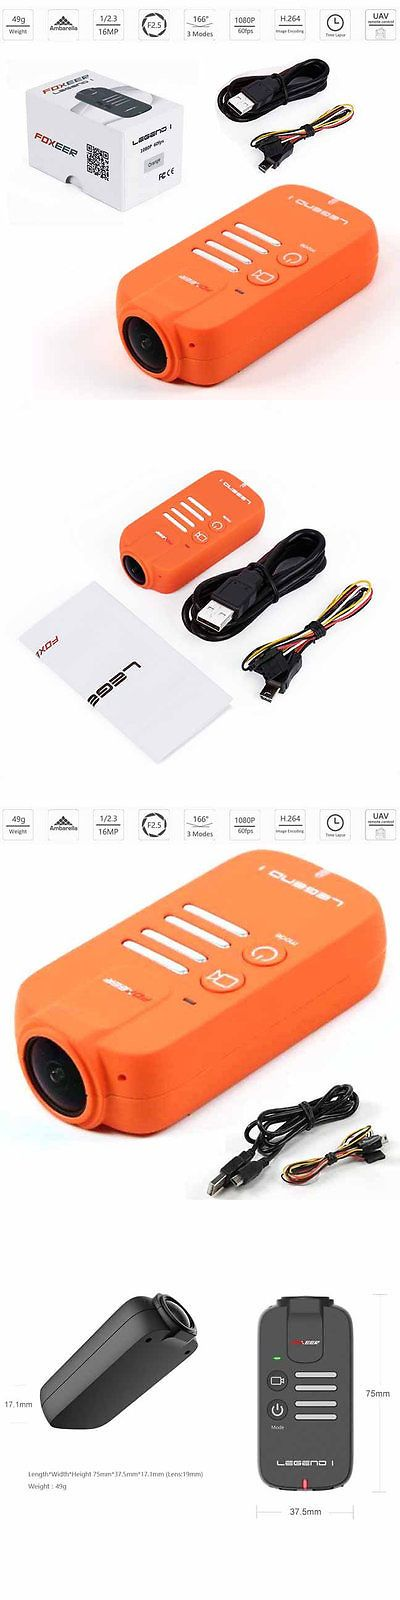 Quadcopters and Multicopters 182207: Foxeer Legend 1 Hd Camera 1080P 60Fps 16Mp (Orange) : Fpv Racing Quad Drone -> BUY IT NOW ONLY: $79.95 on eBay!